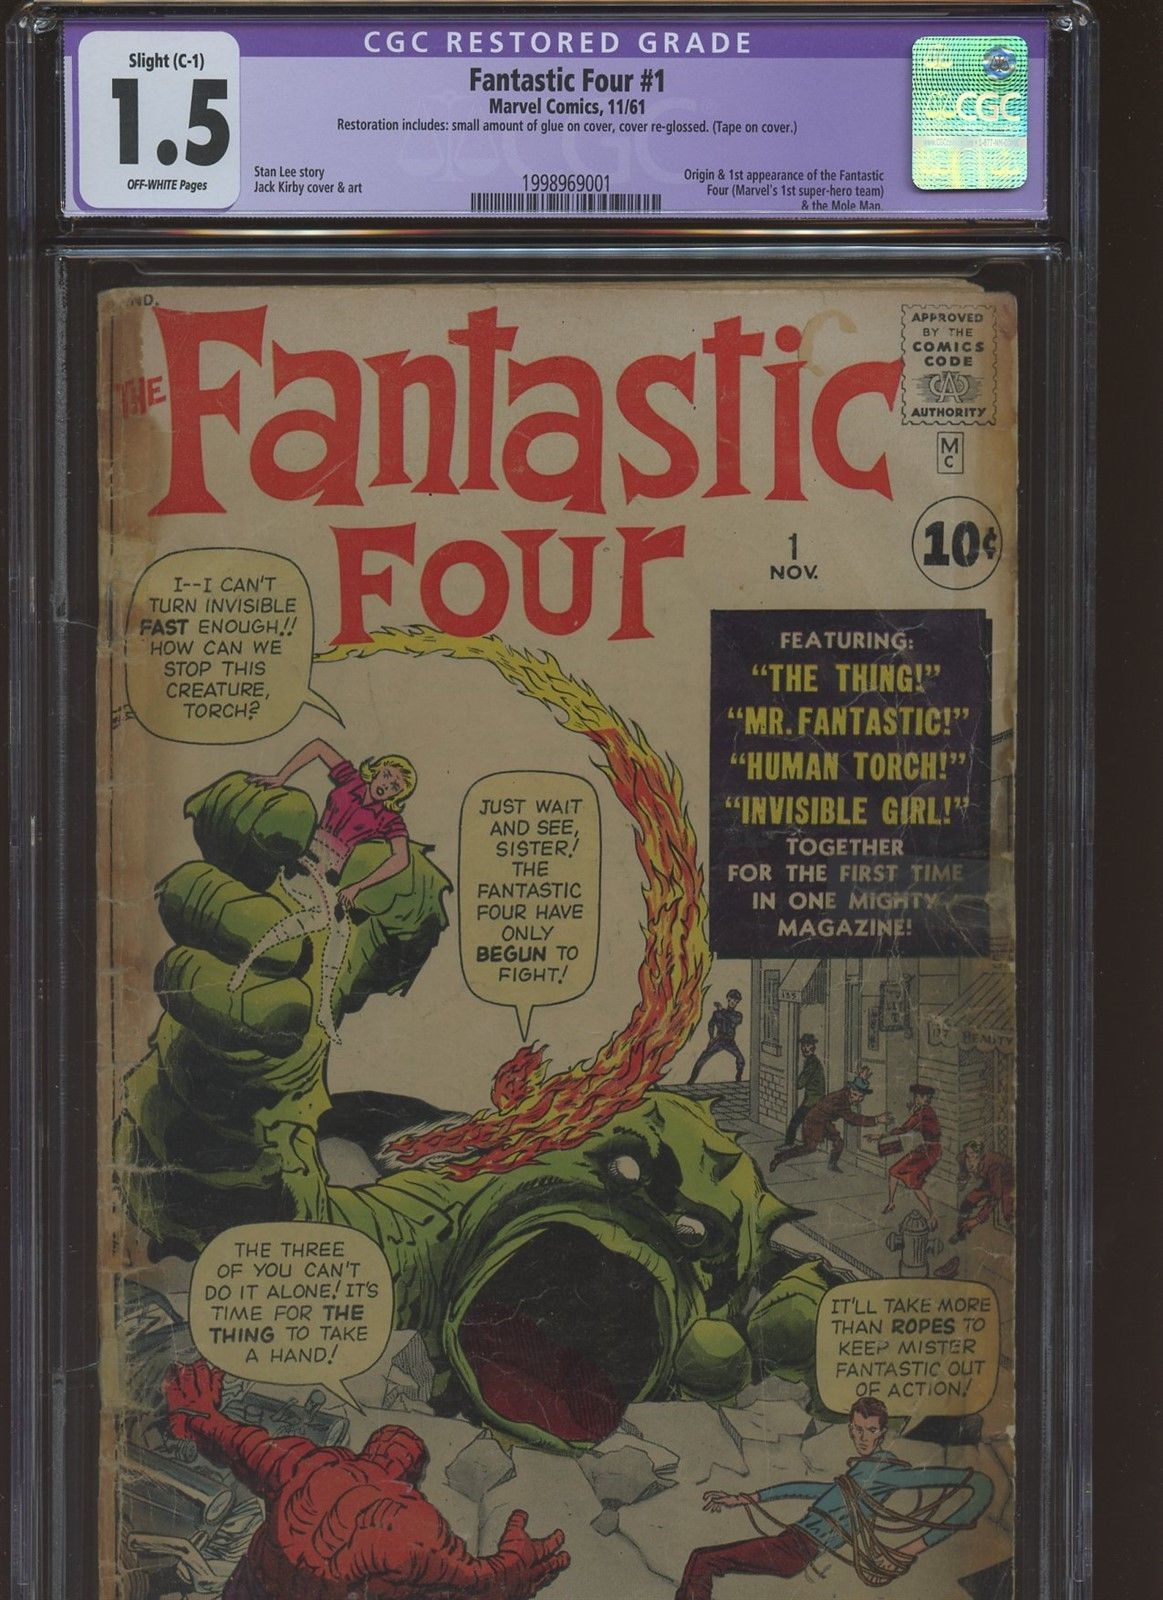 Fantastic Four 1 CGC 1.5 | Marvel 1961 | 1st Fantastic Four By Lee & Kirby